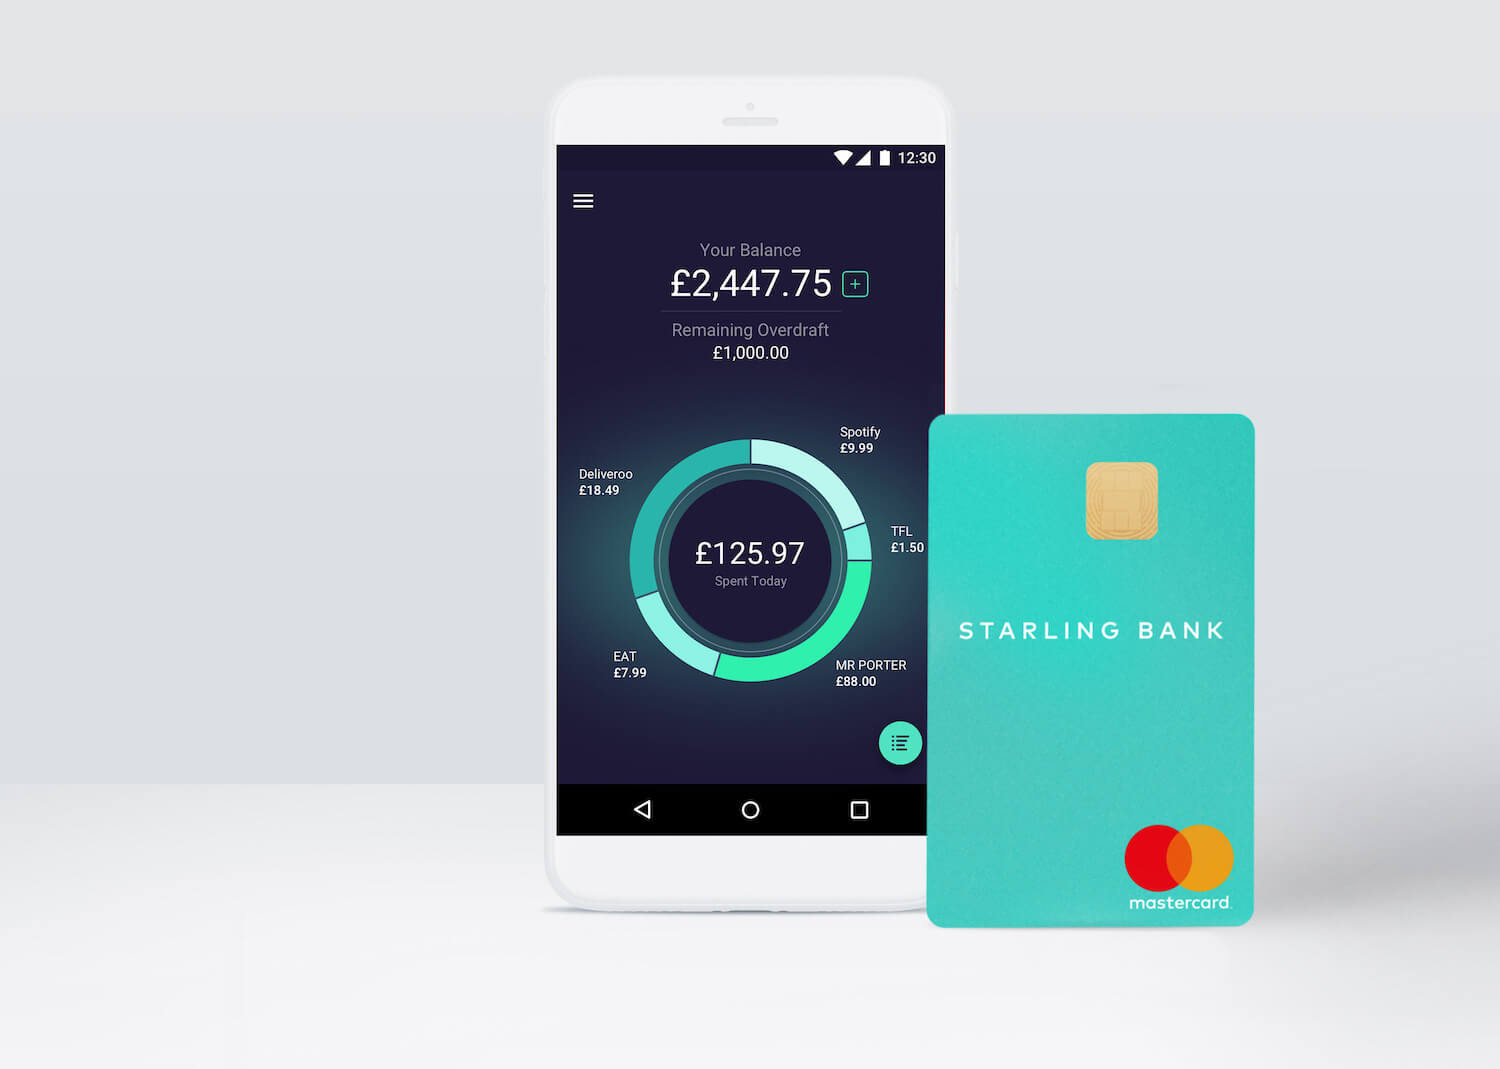 Starling Bank Spending and Balance on App